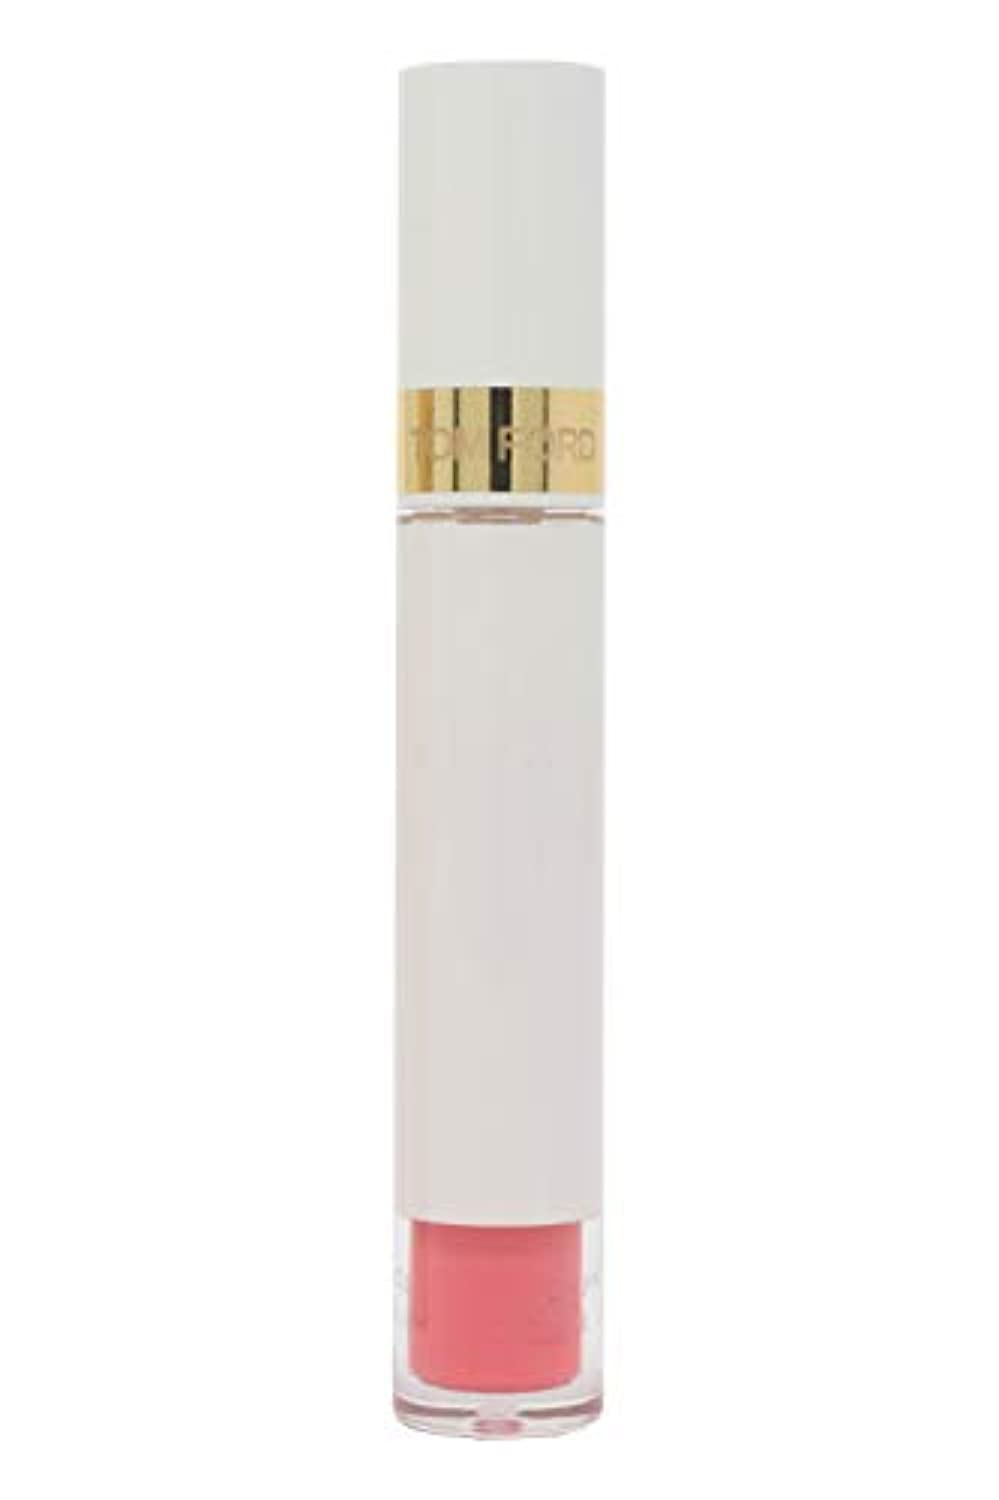 トム フォード Lip Lacqure Liquid Tint - # 04 In Ecstasy 2.7ml/0.09oz並行輸入品